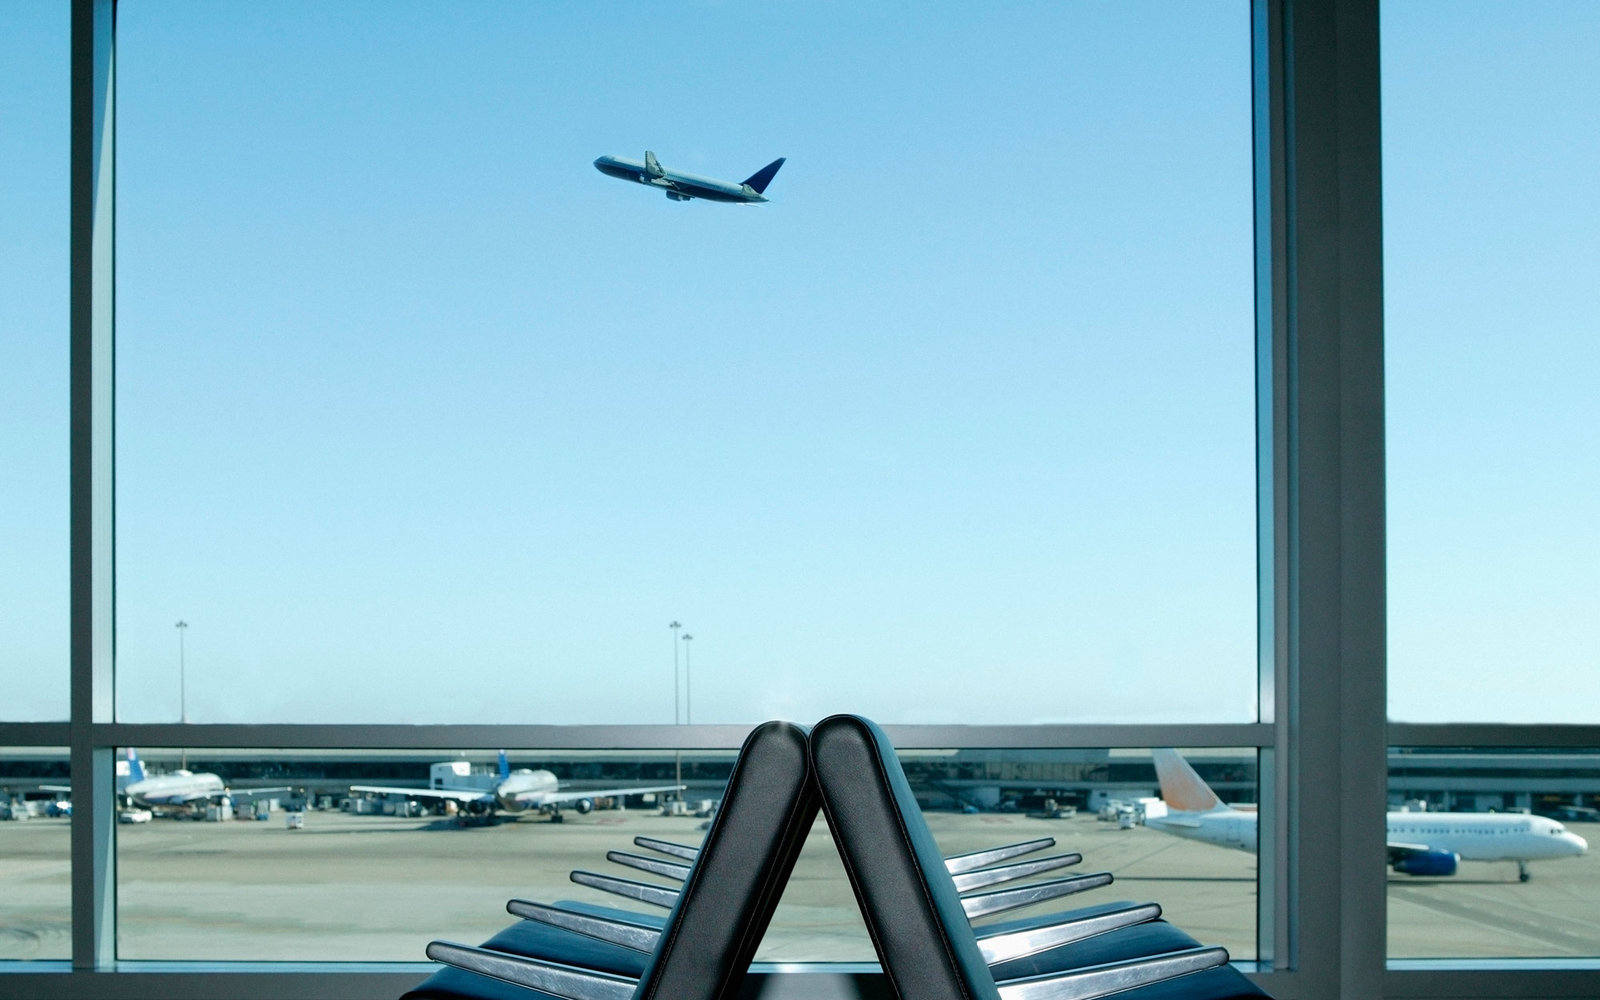 How correctly: at the airport or at the airport 48